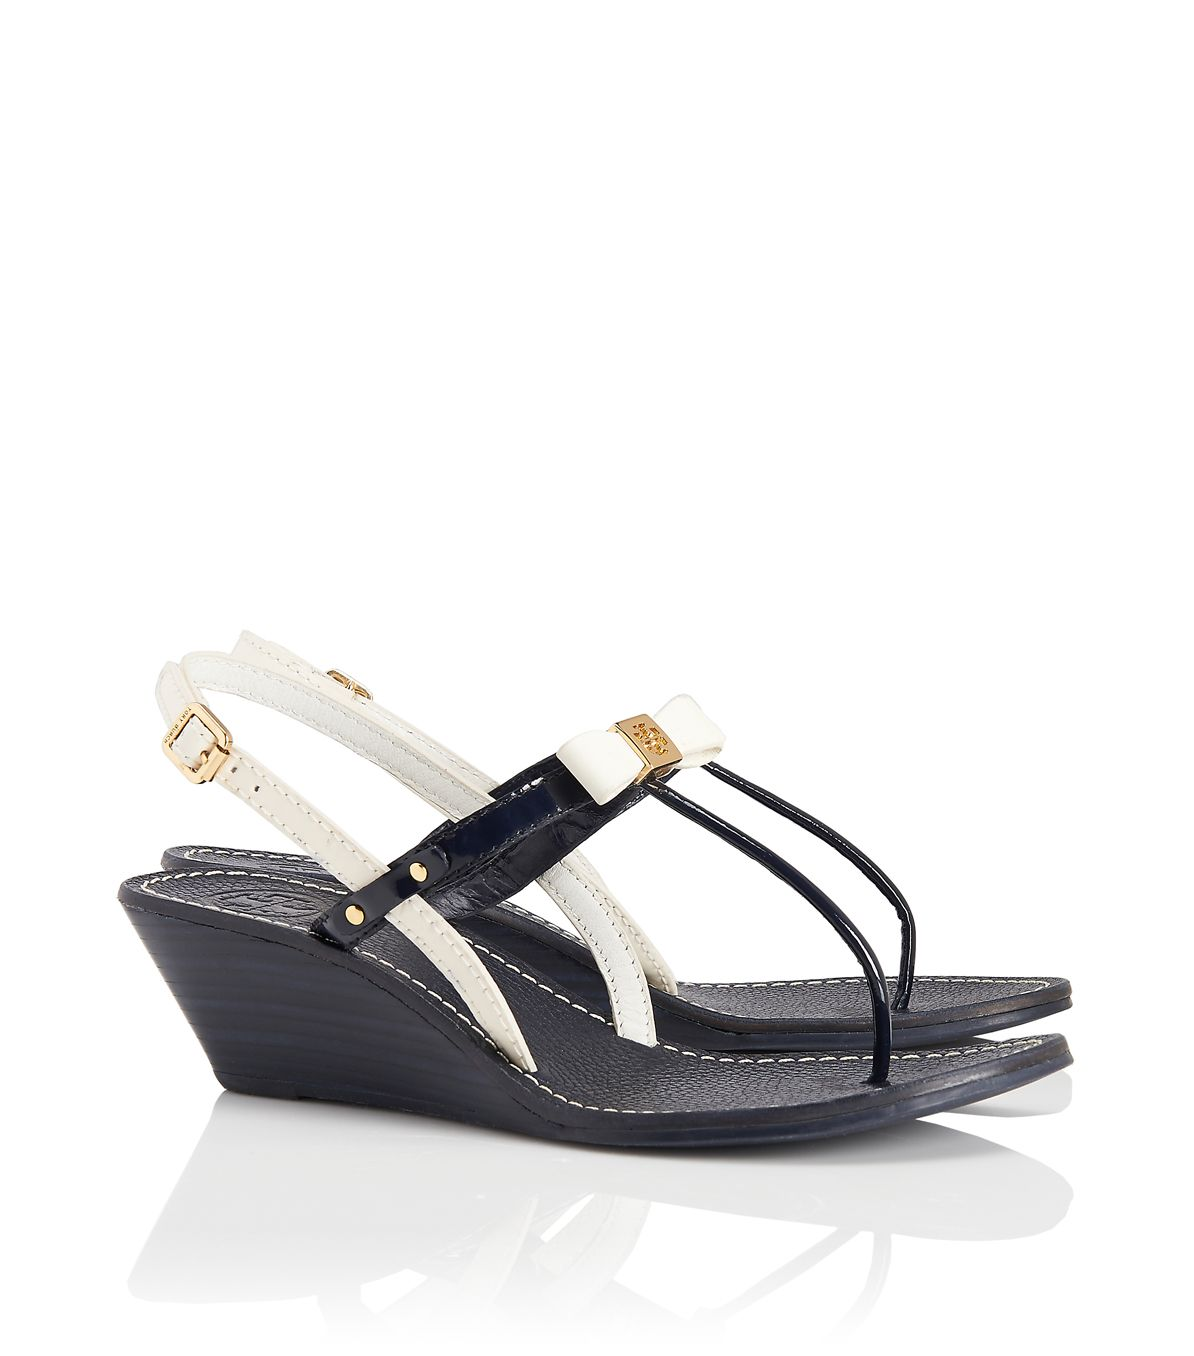 Tory Burch Kailey Two Tone Bow Sandal in Black - Lyst